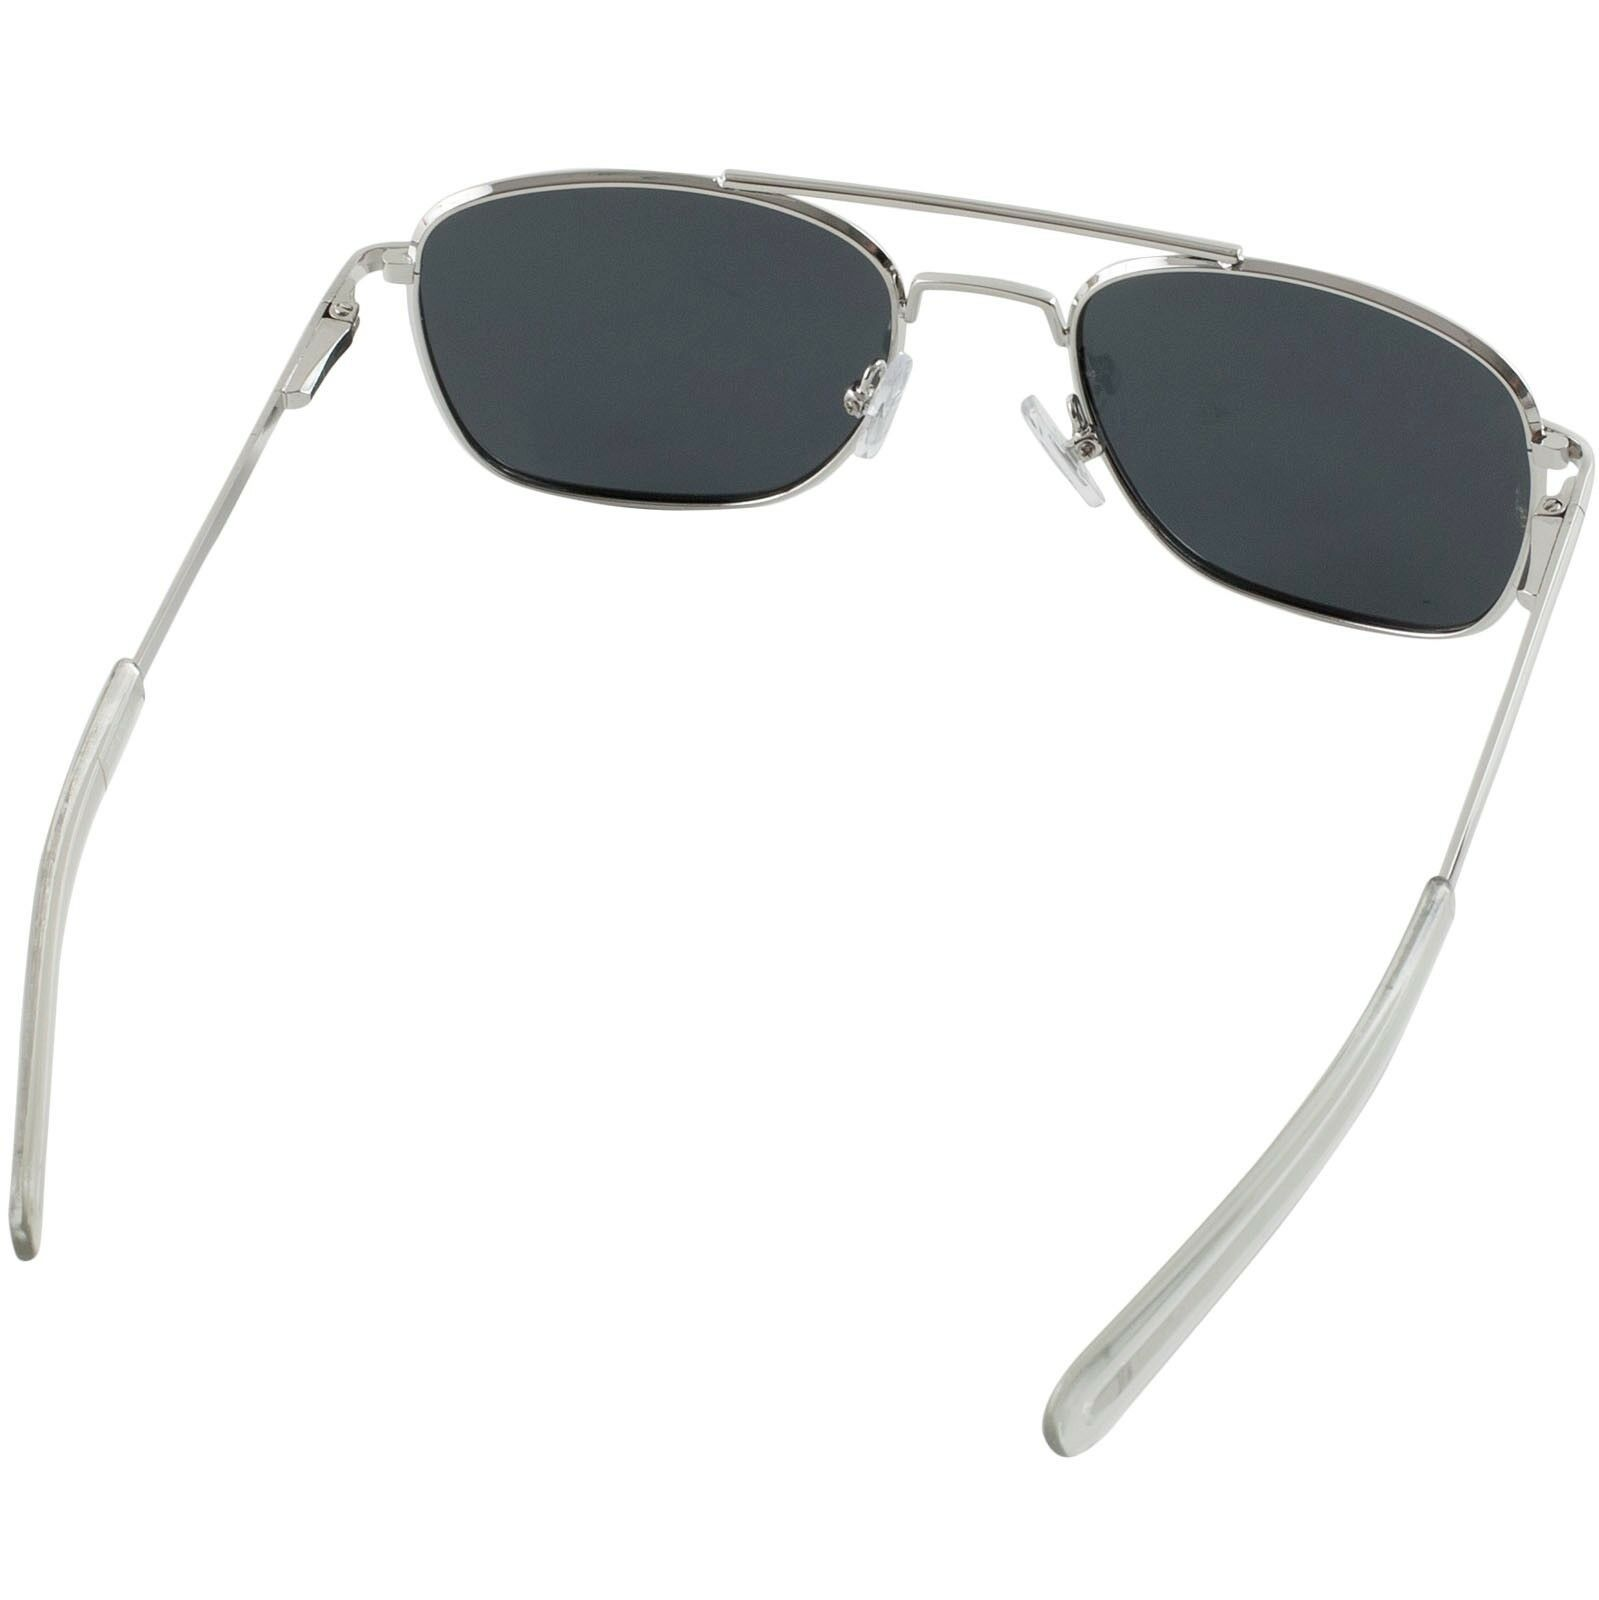 33194b35339 Humvee Military Pilot Silver Frames 52 mm Mens SUNGLASSES Metal Polarized  Lens